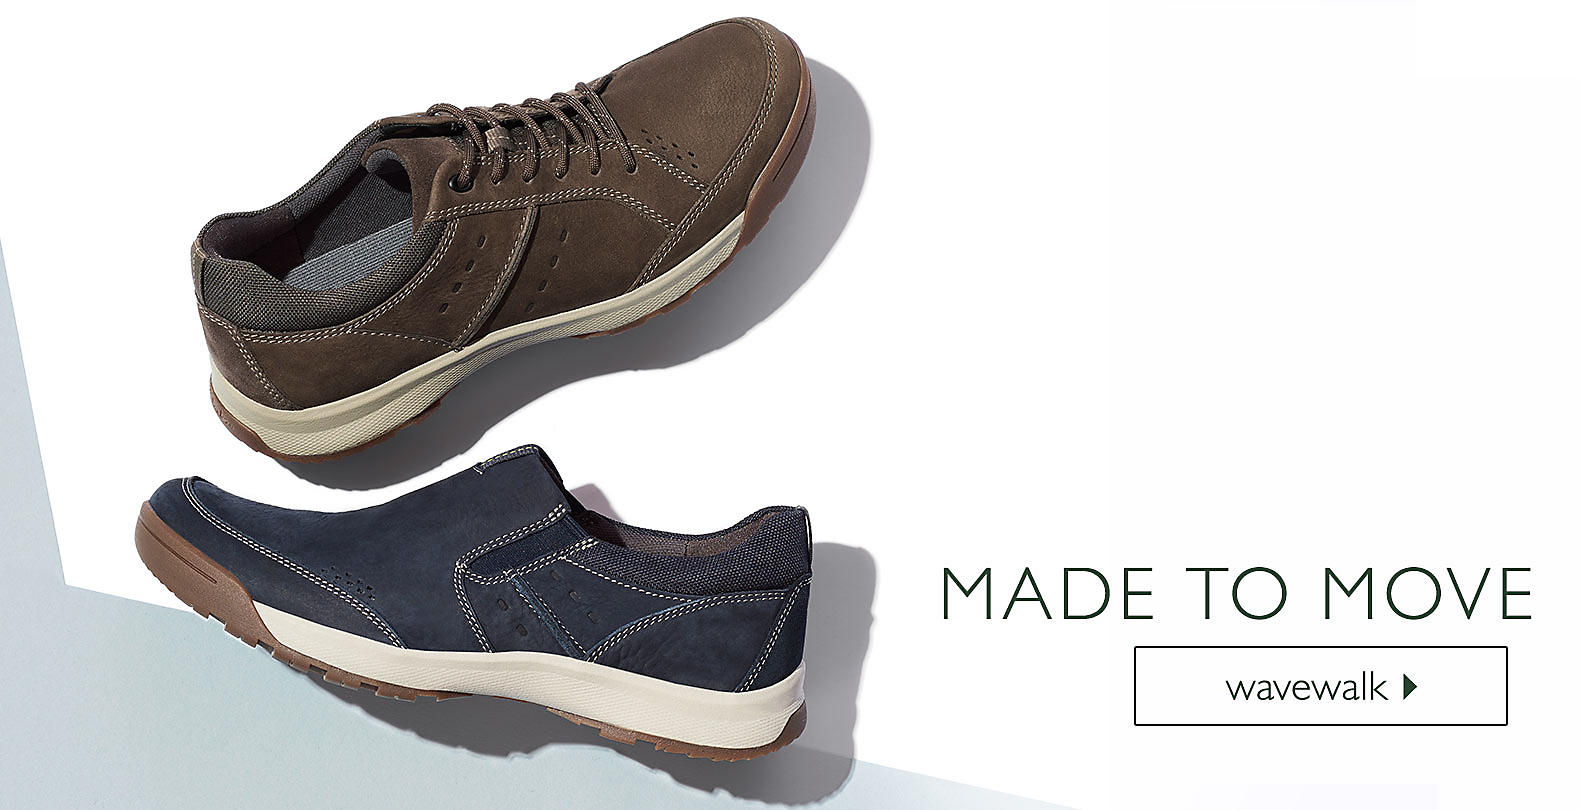 Shop Clarks for Men's Wave Walk